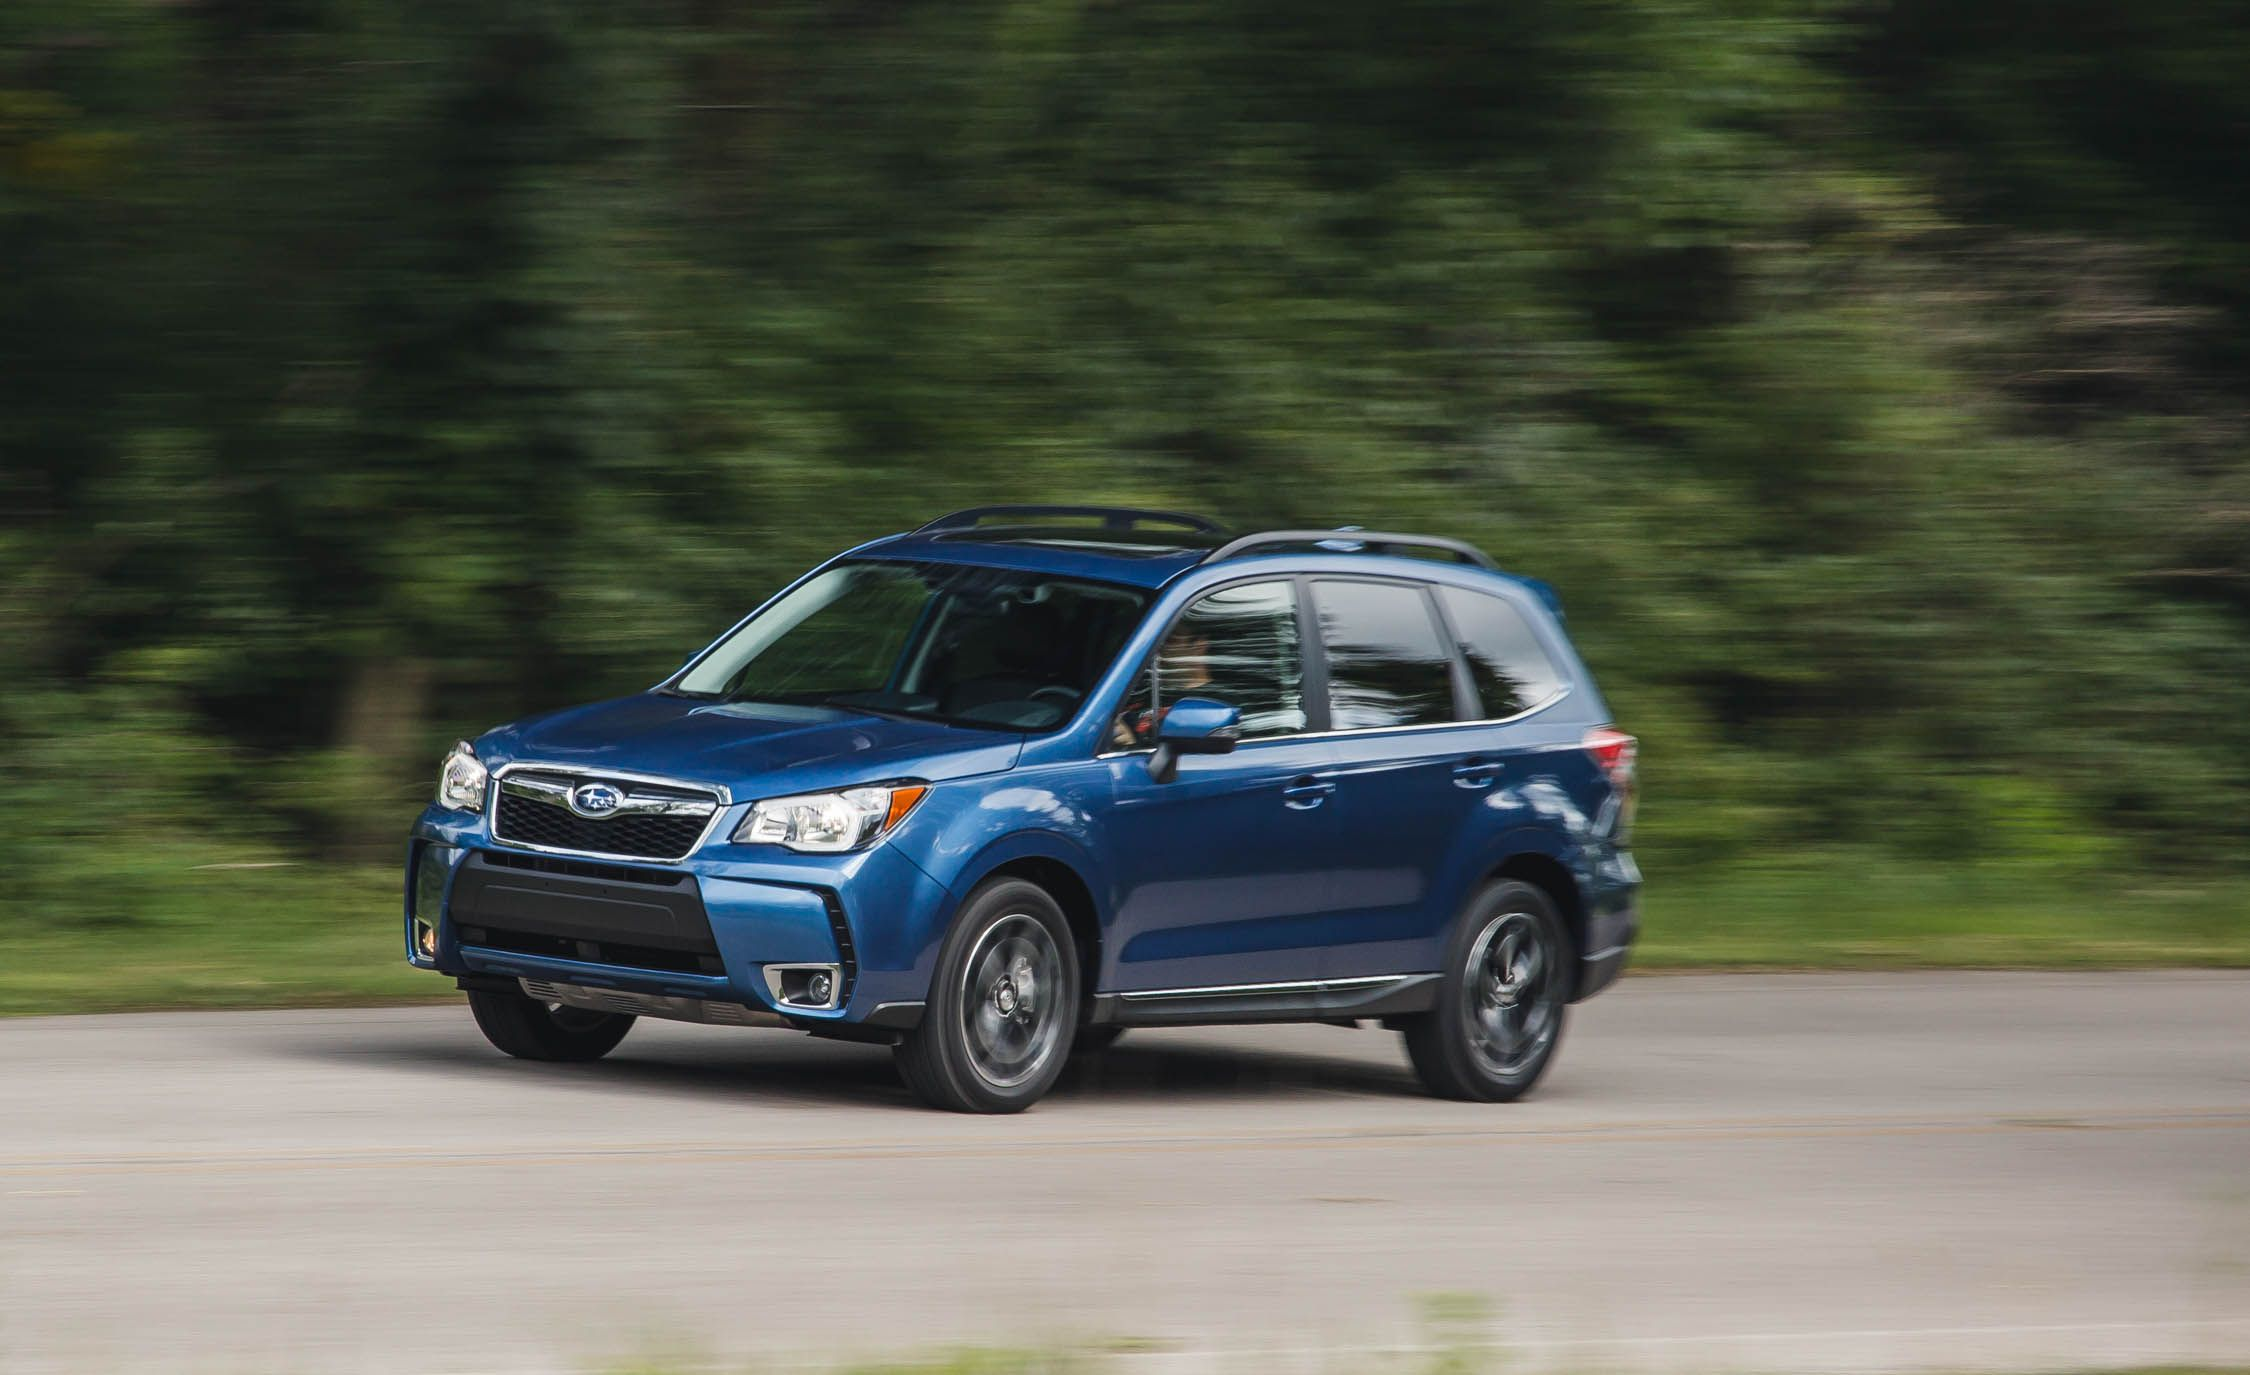 2016 subaru forester pictures | photo gallery | car and driver